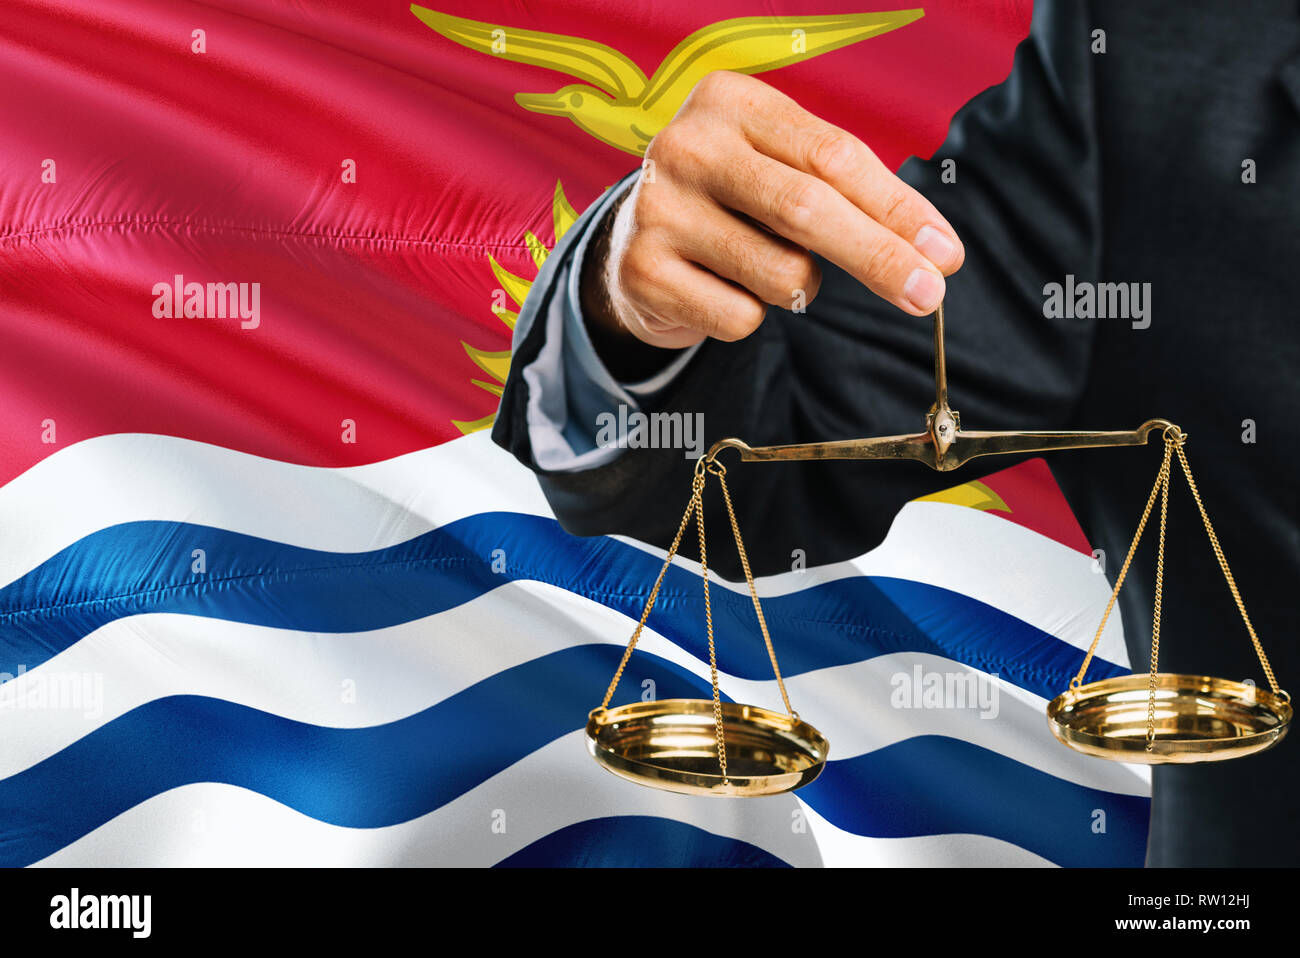 Judge is holding golden scales of justice with Kiribati waving flag background. Equality theme and legal concept. Stock Photo